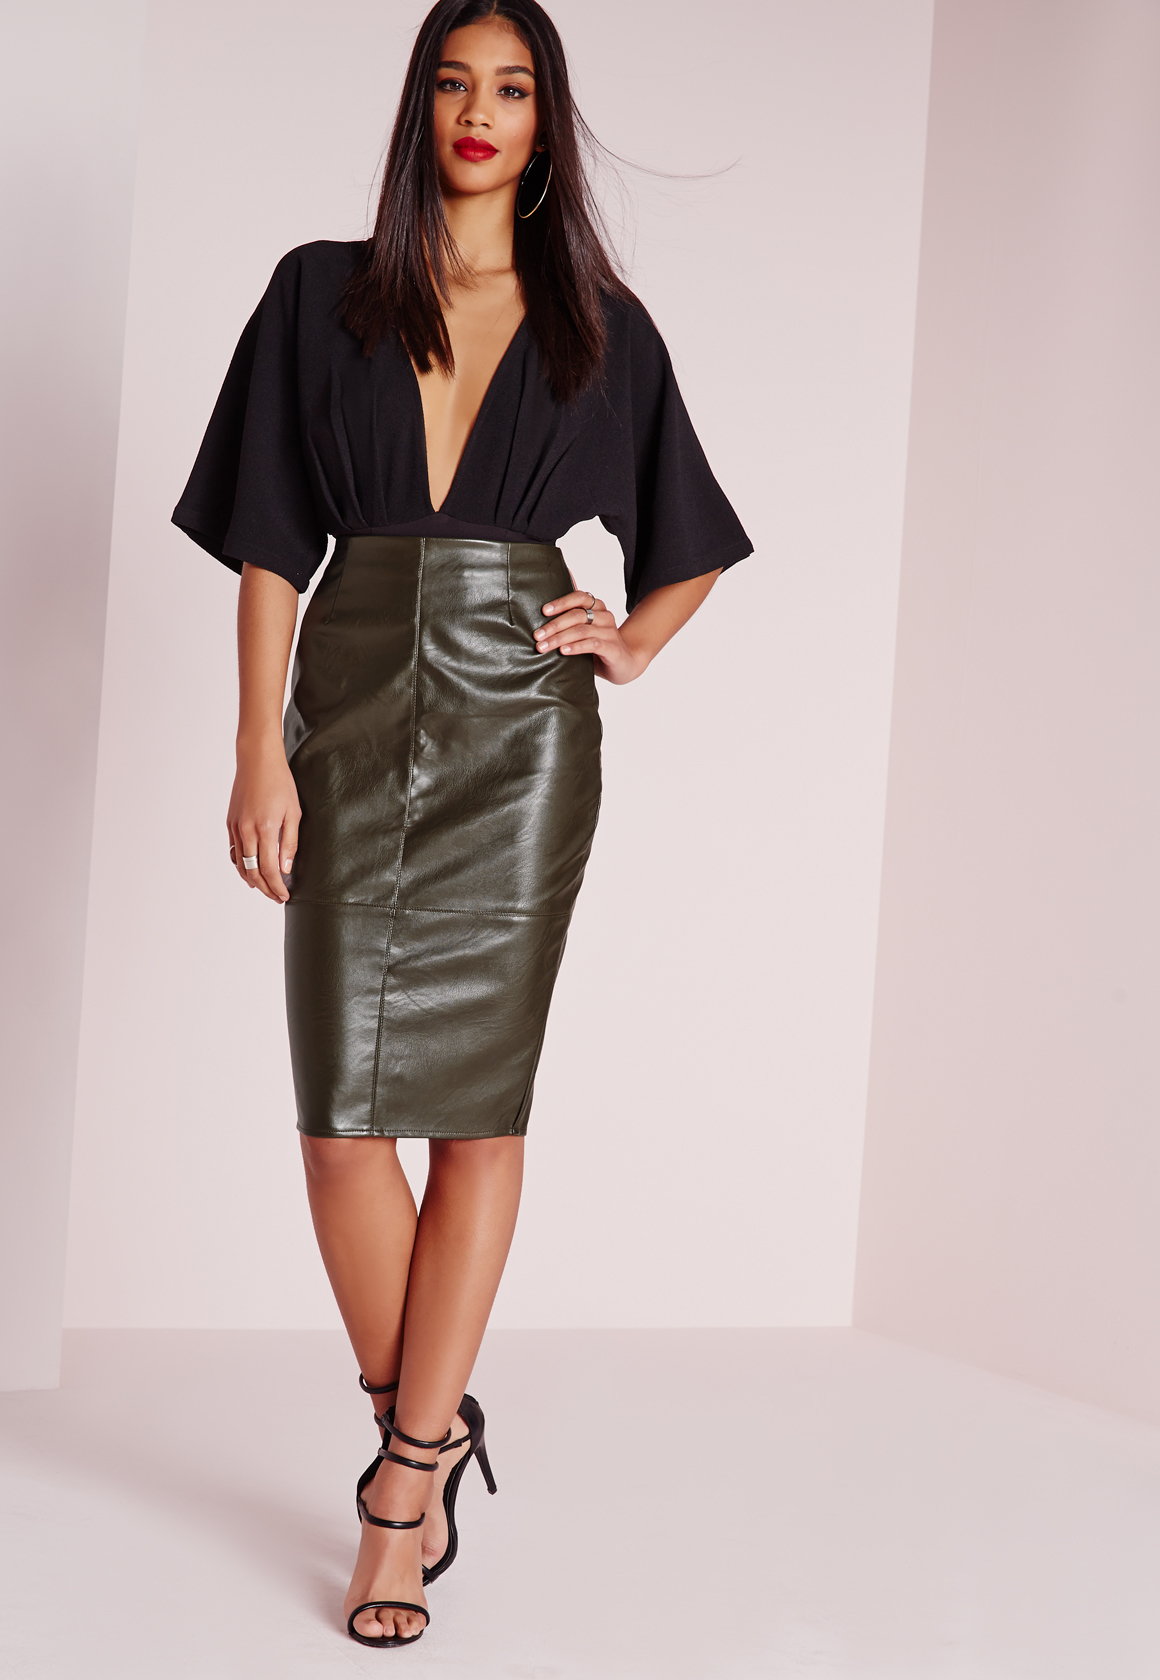 Leather Khaki Skirt - Dress Ala